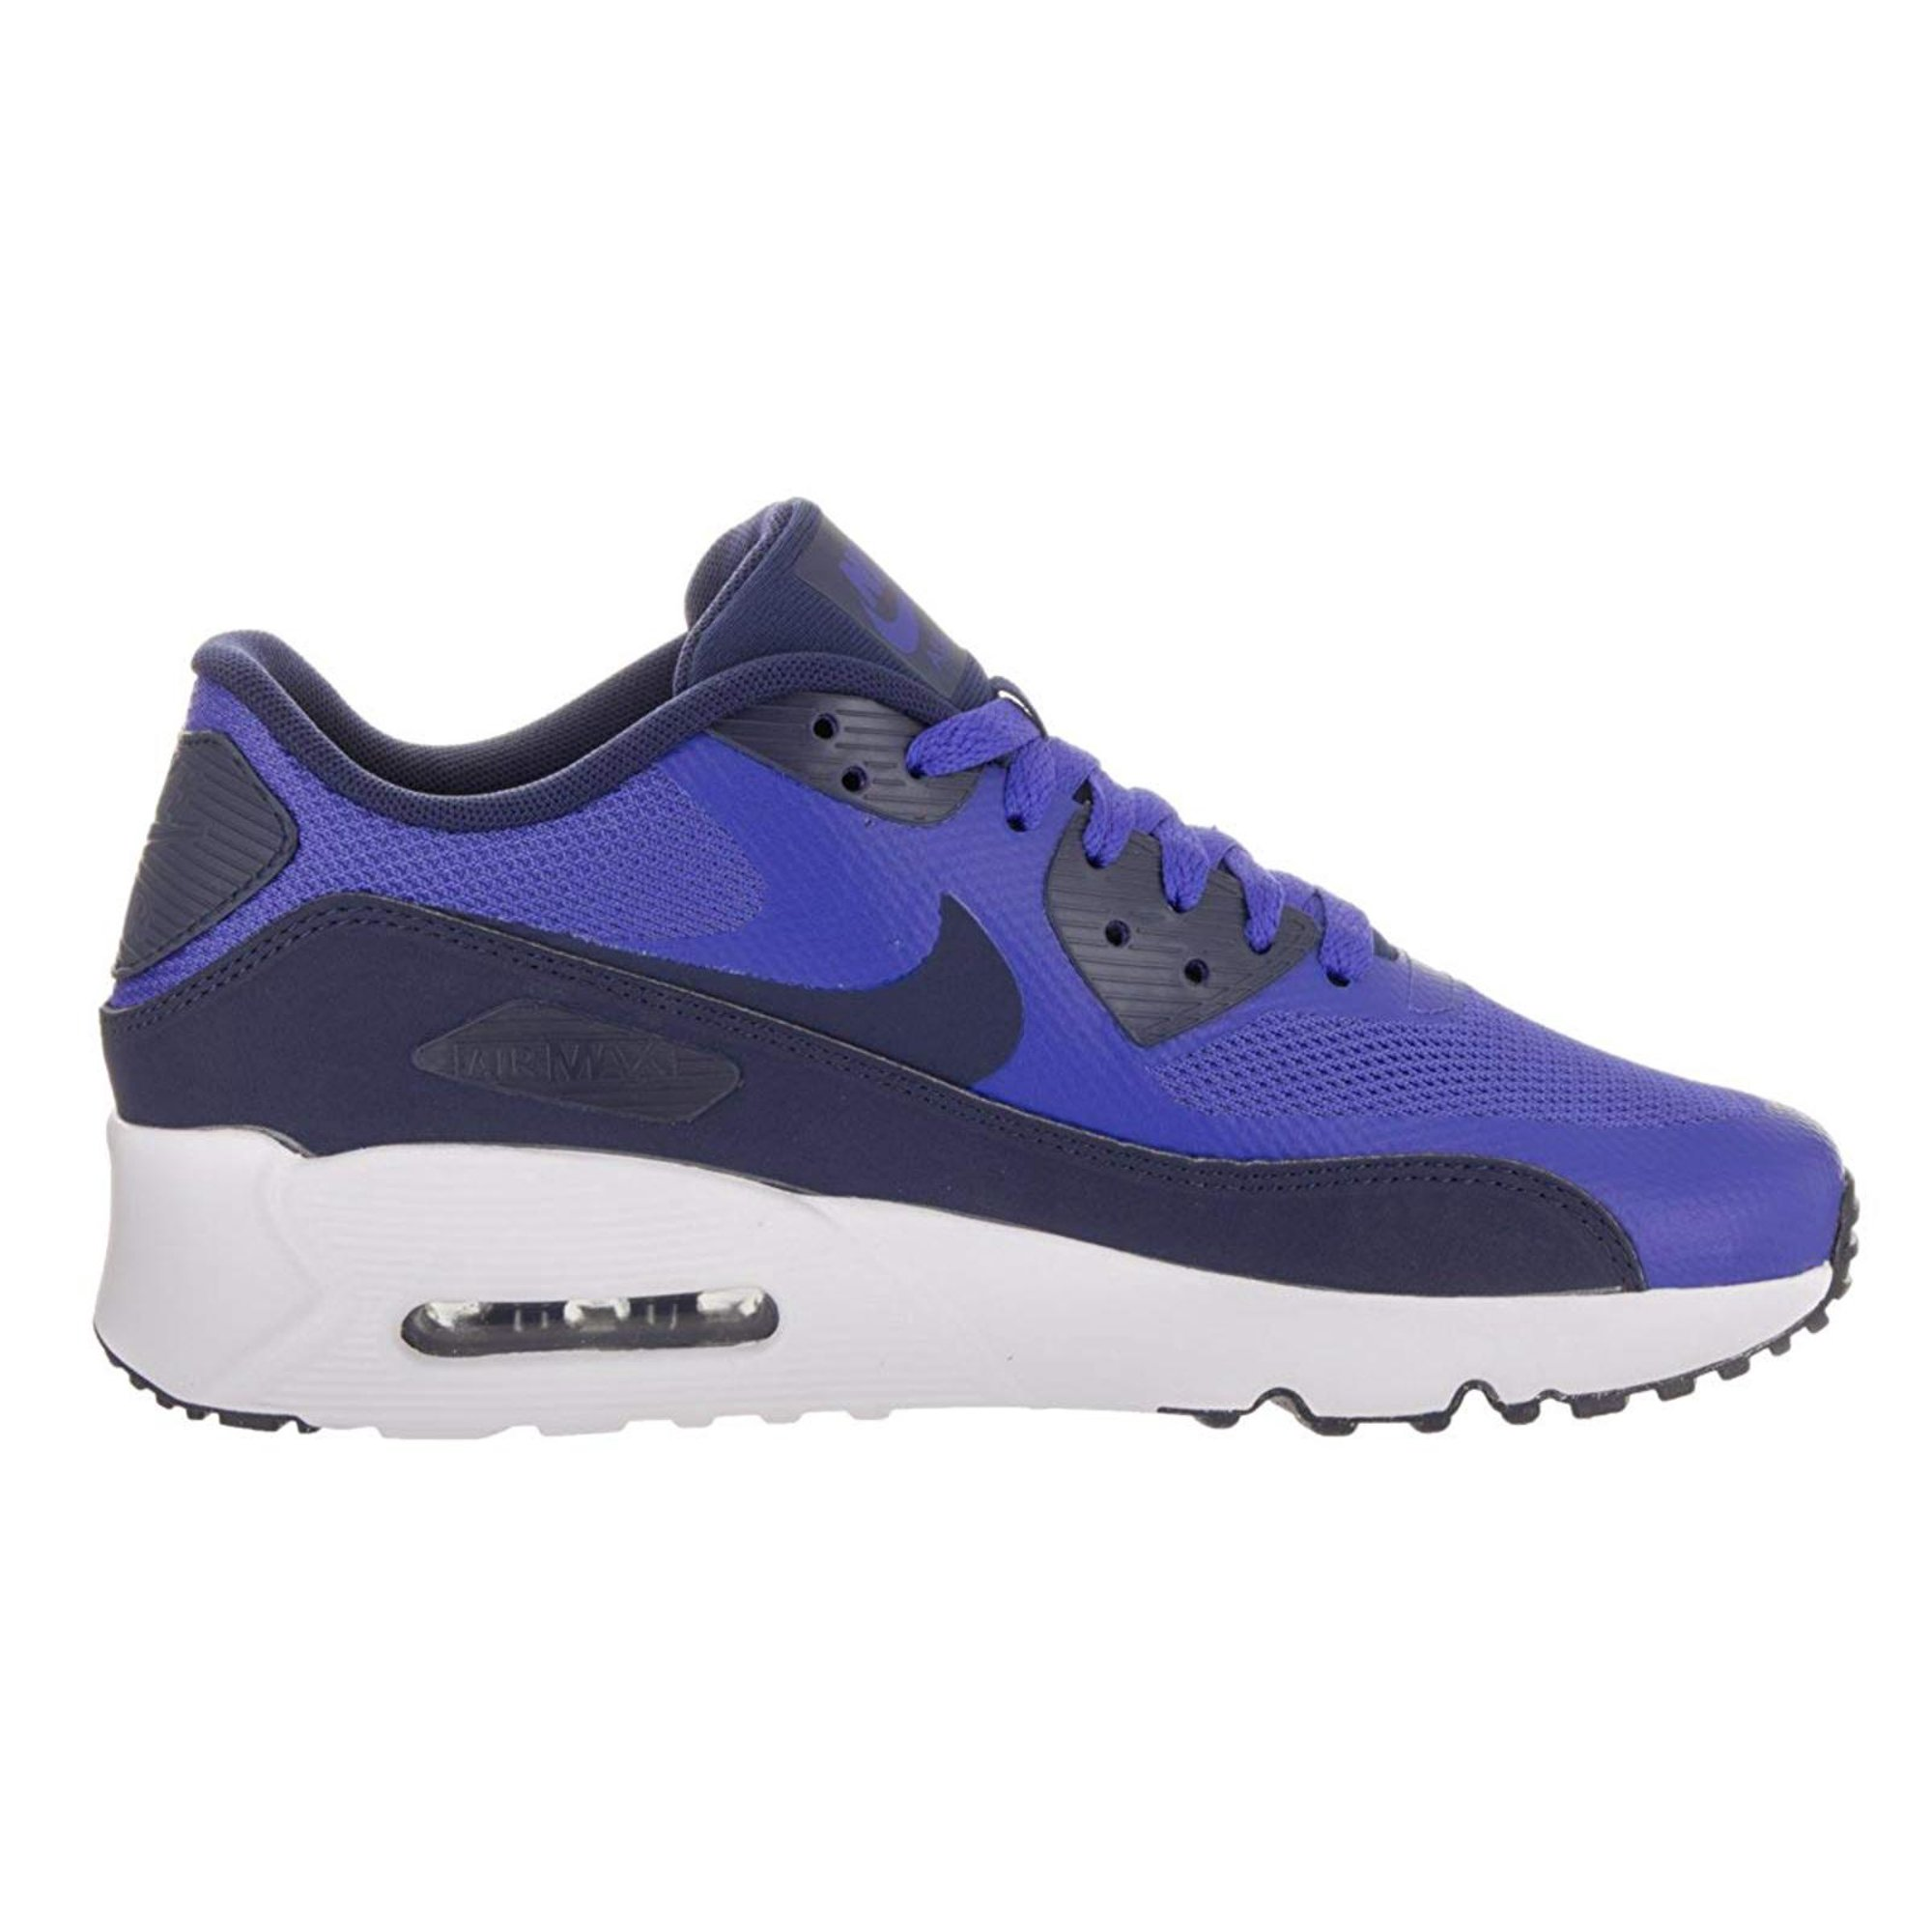 separation shoes 2556d 0da0a Nike Mens Air Max 90 Ultra 2.0 Fabric Low Top Lace Up Trail   Walmart Canada